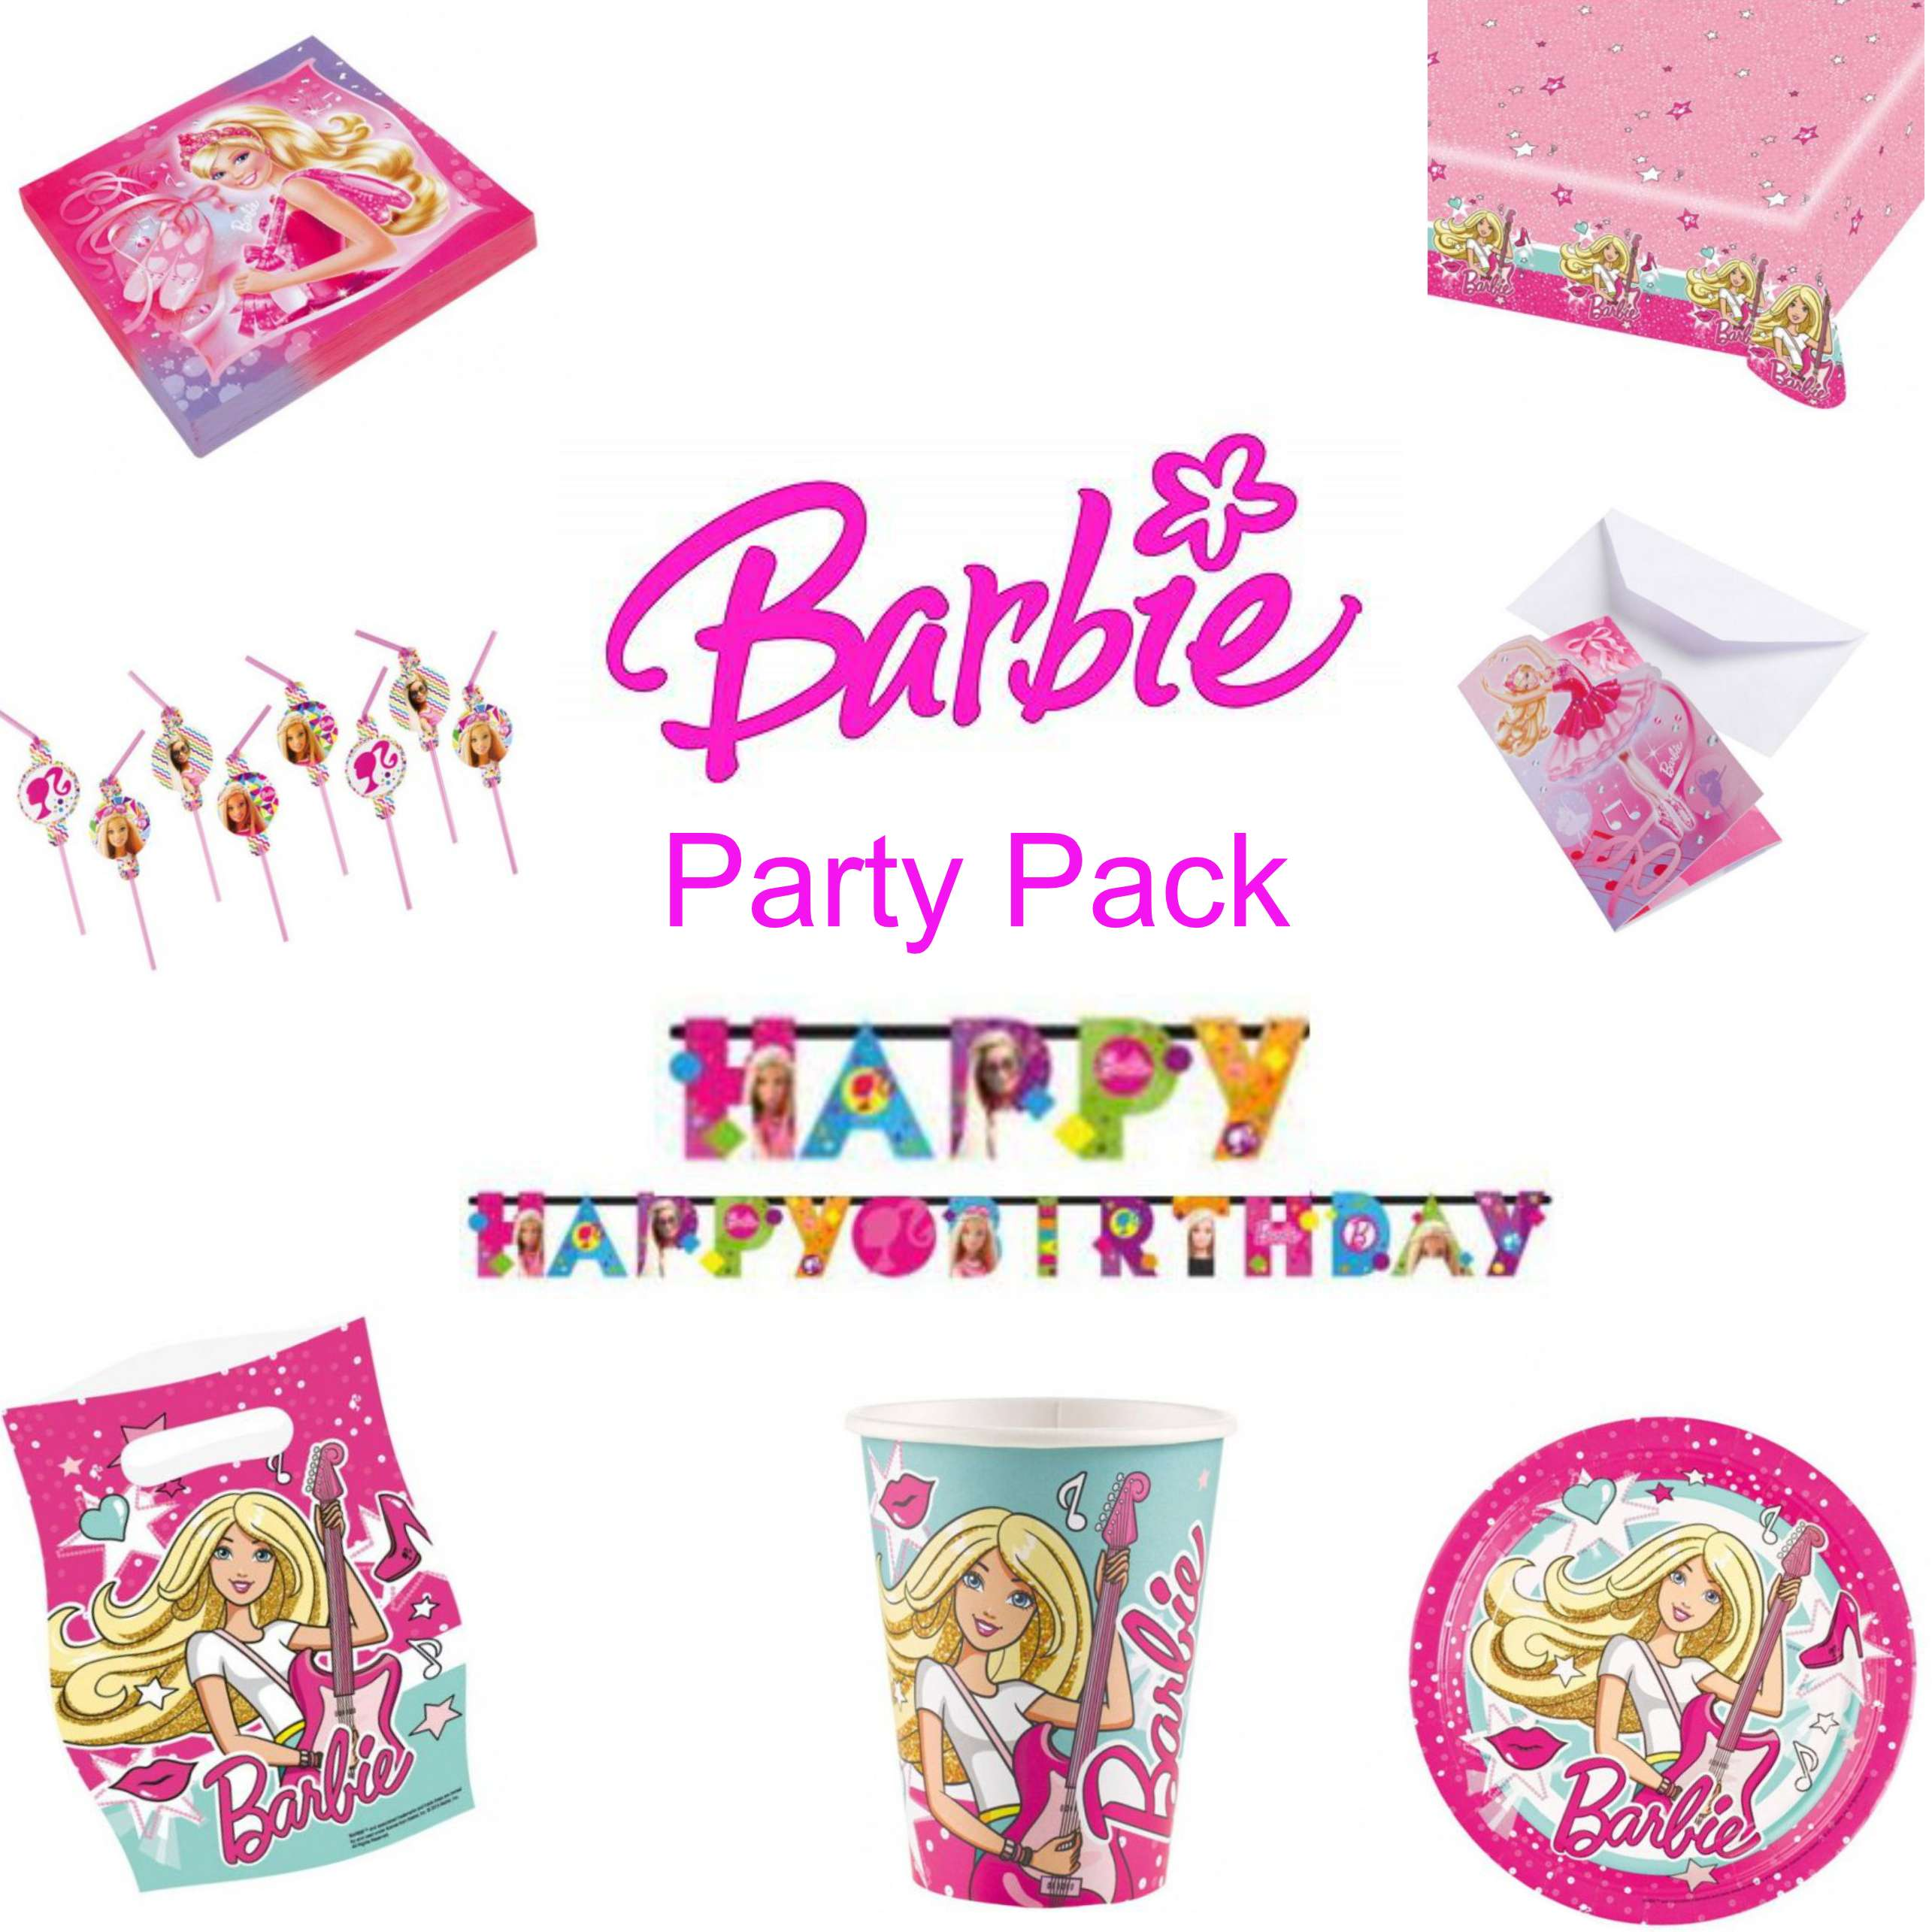 Barbie Party Pack